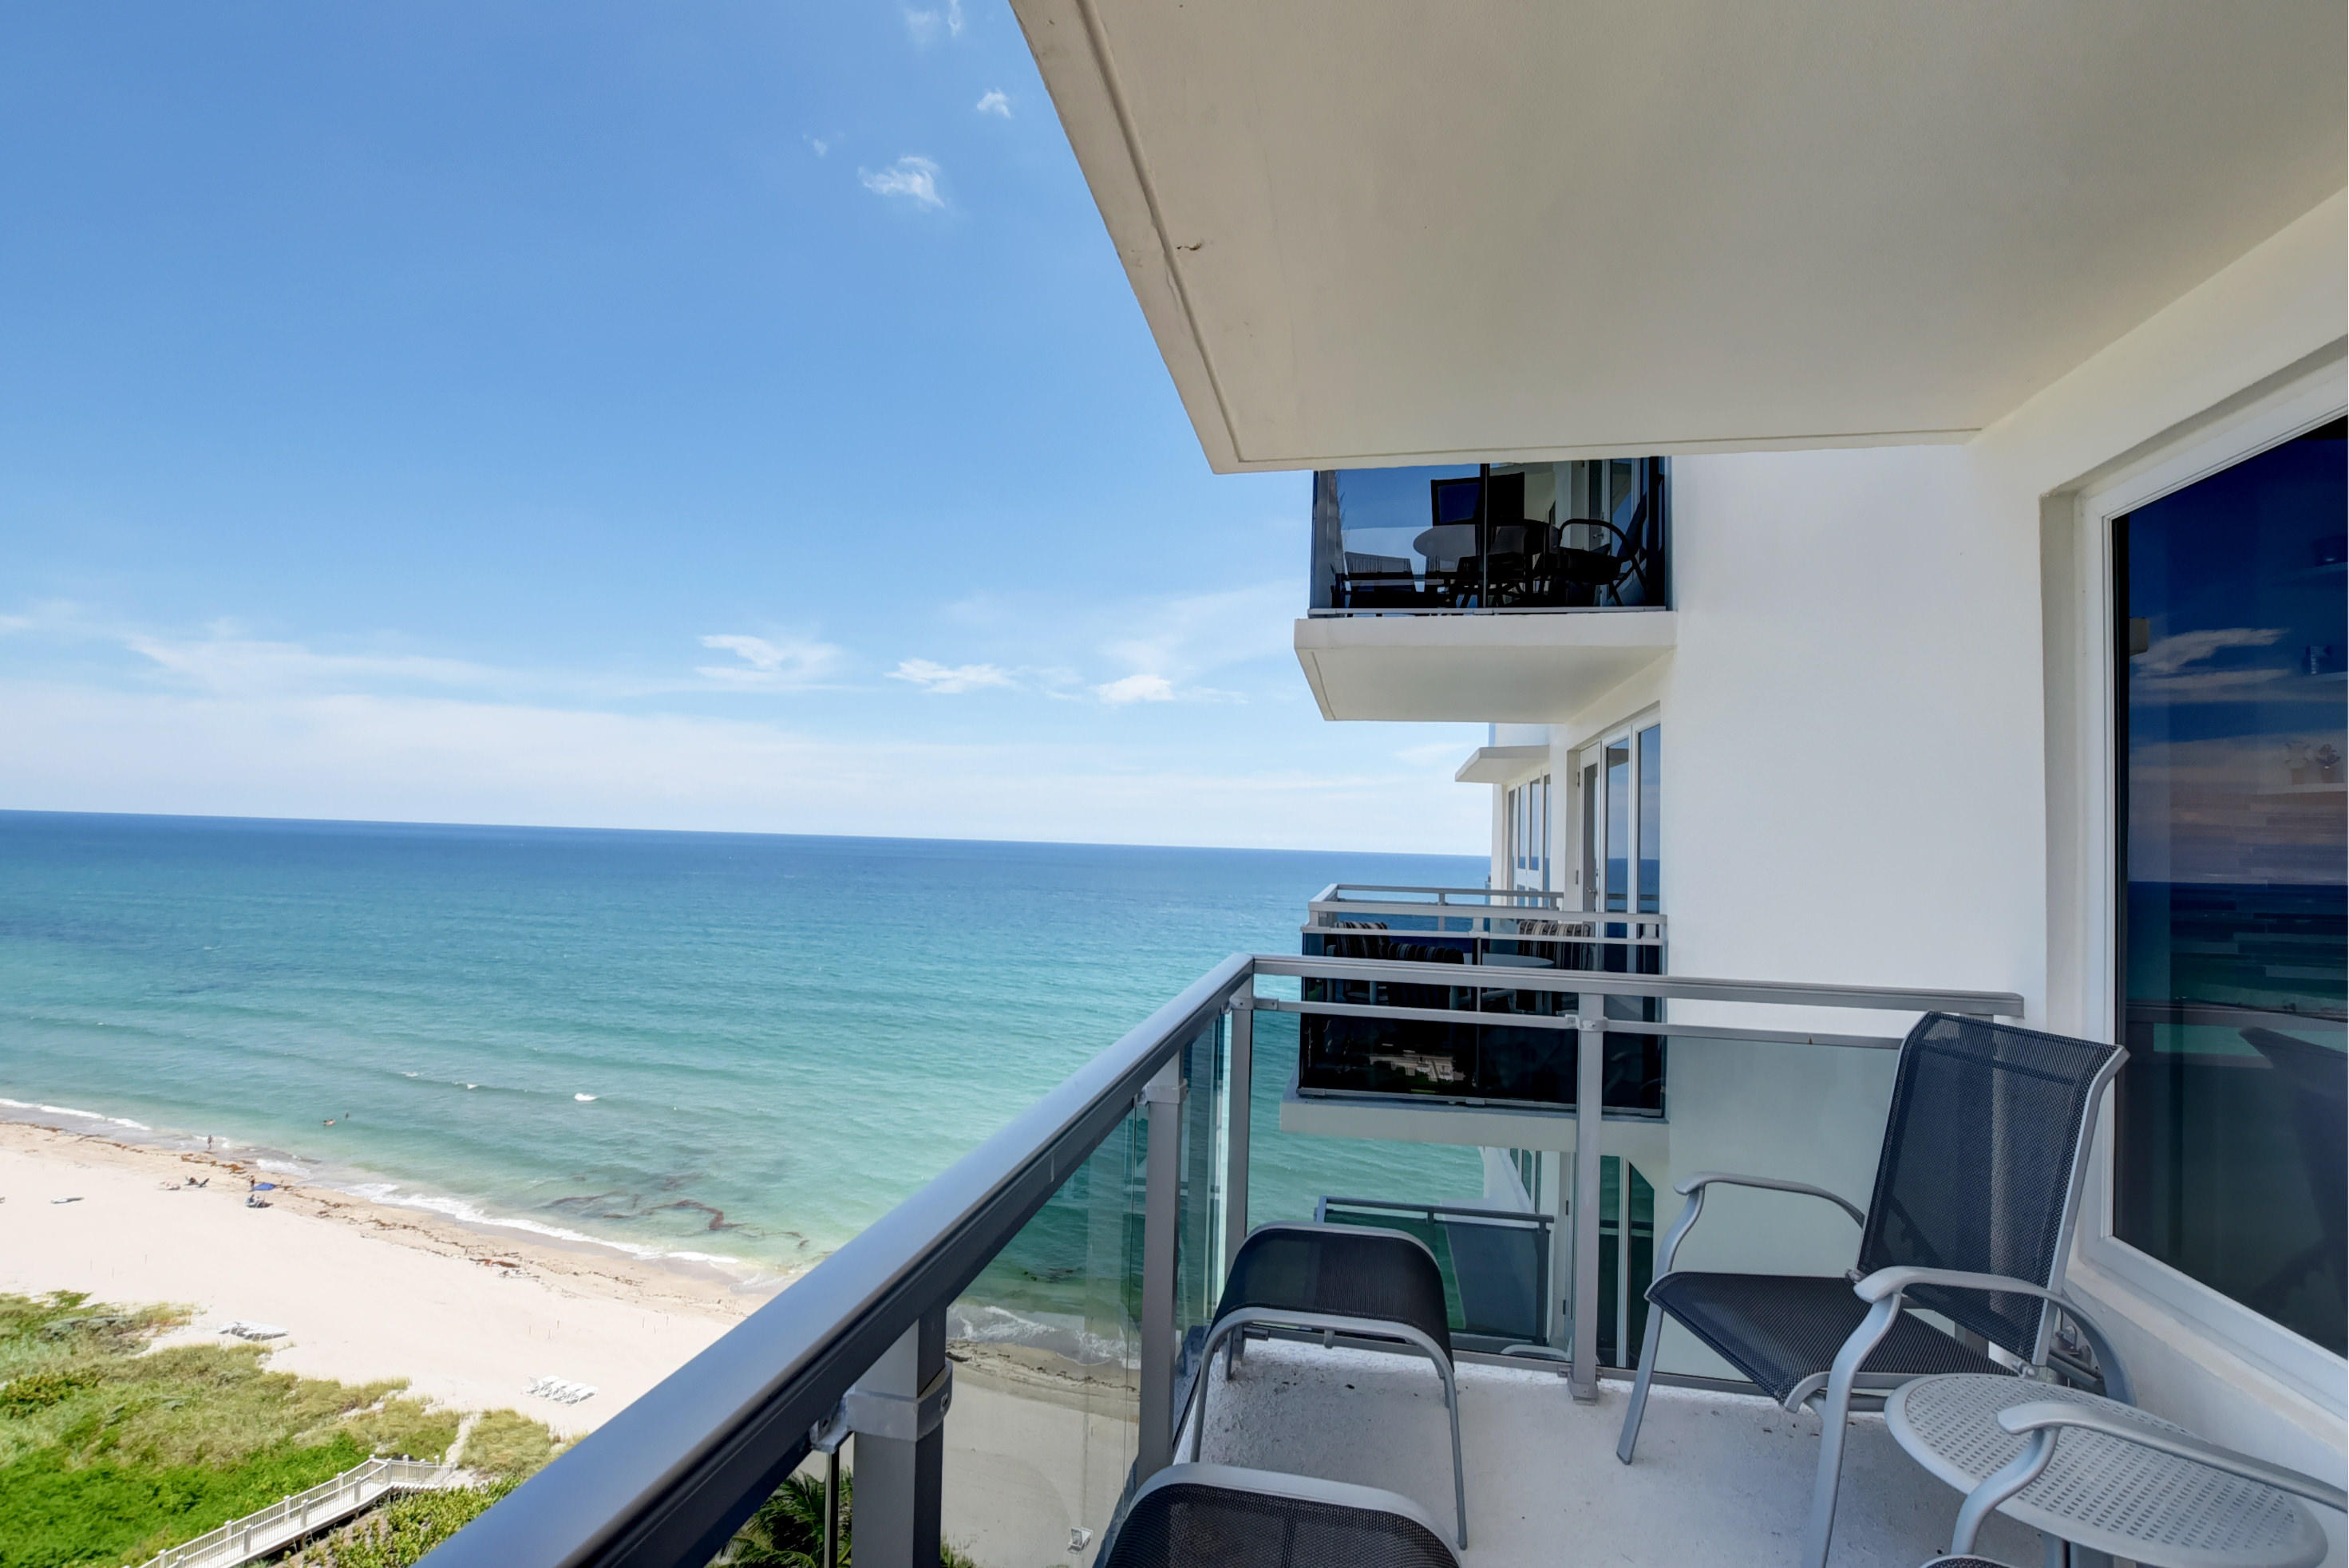 OCEAN REEF TOWERS BOCA RATON REAL ESTATE